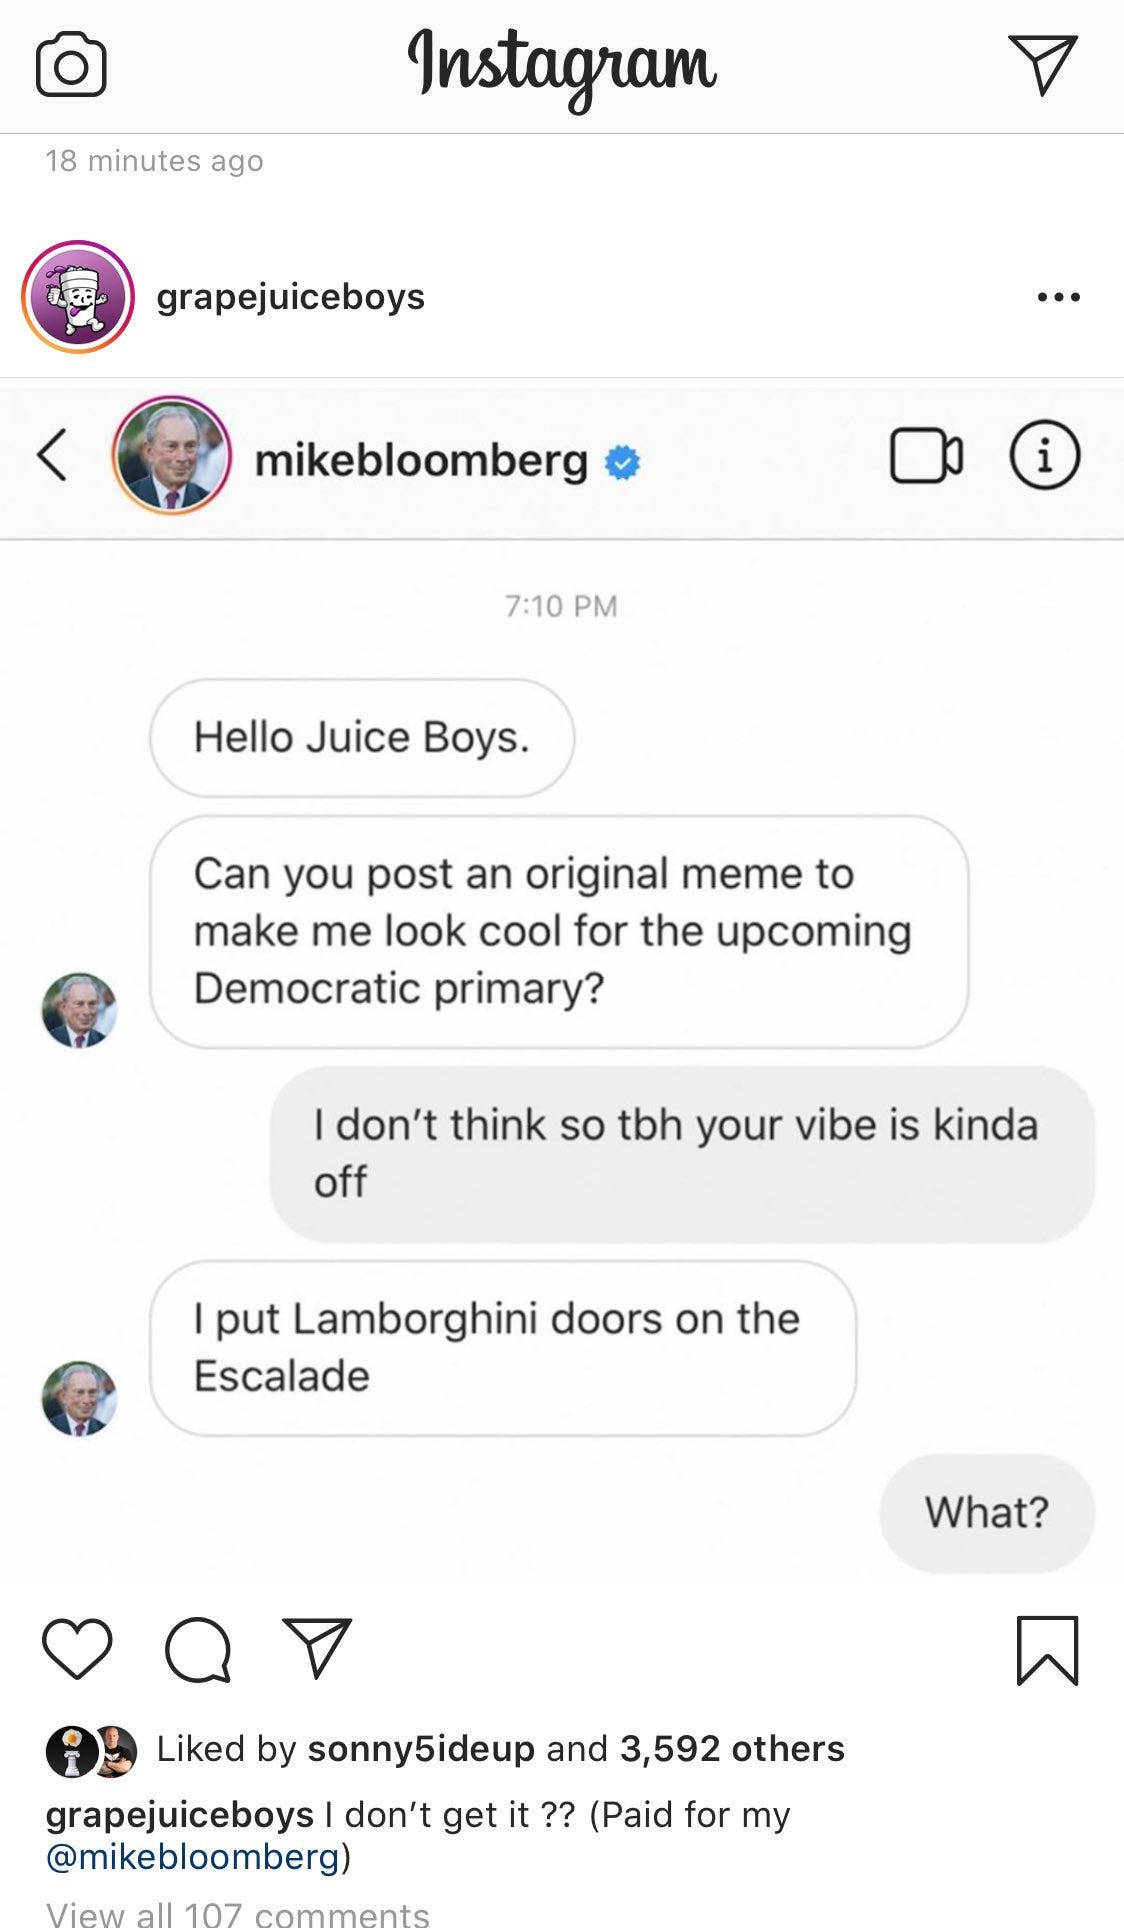 yes this is really sponsored by @mikebloomberg